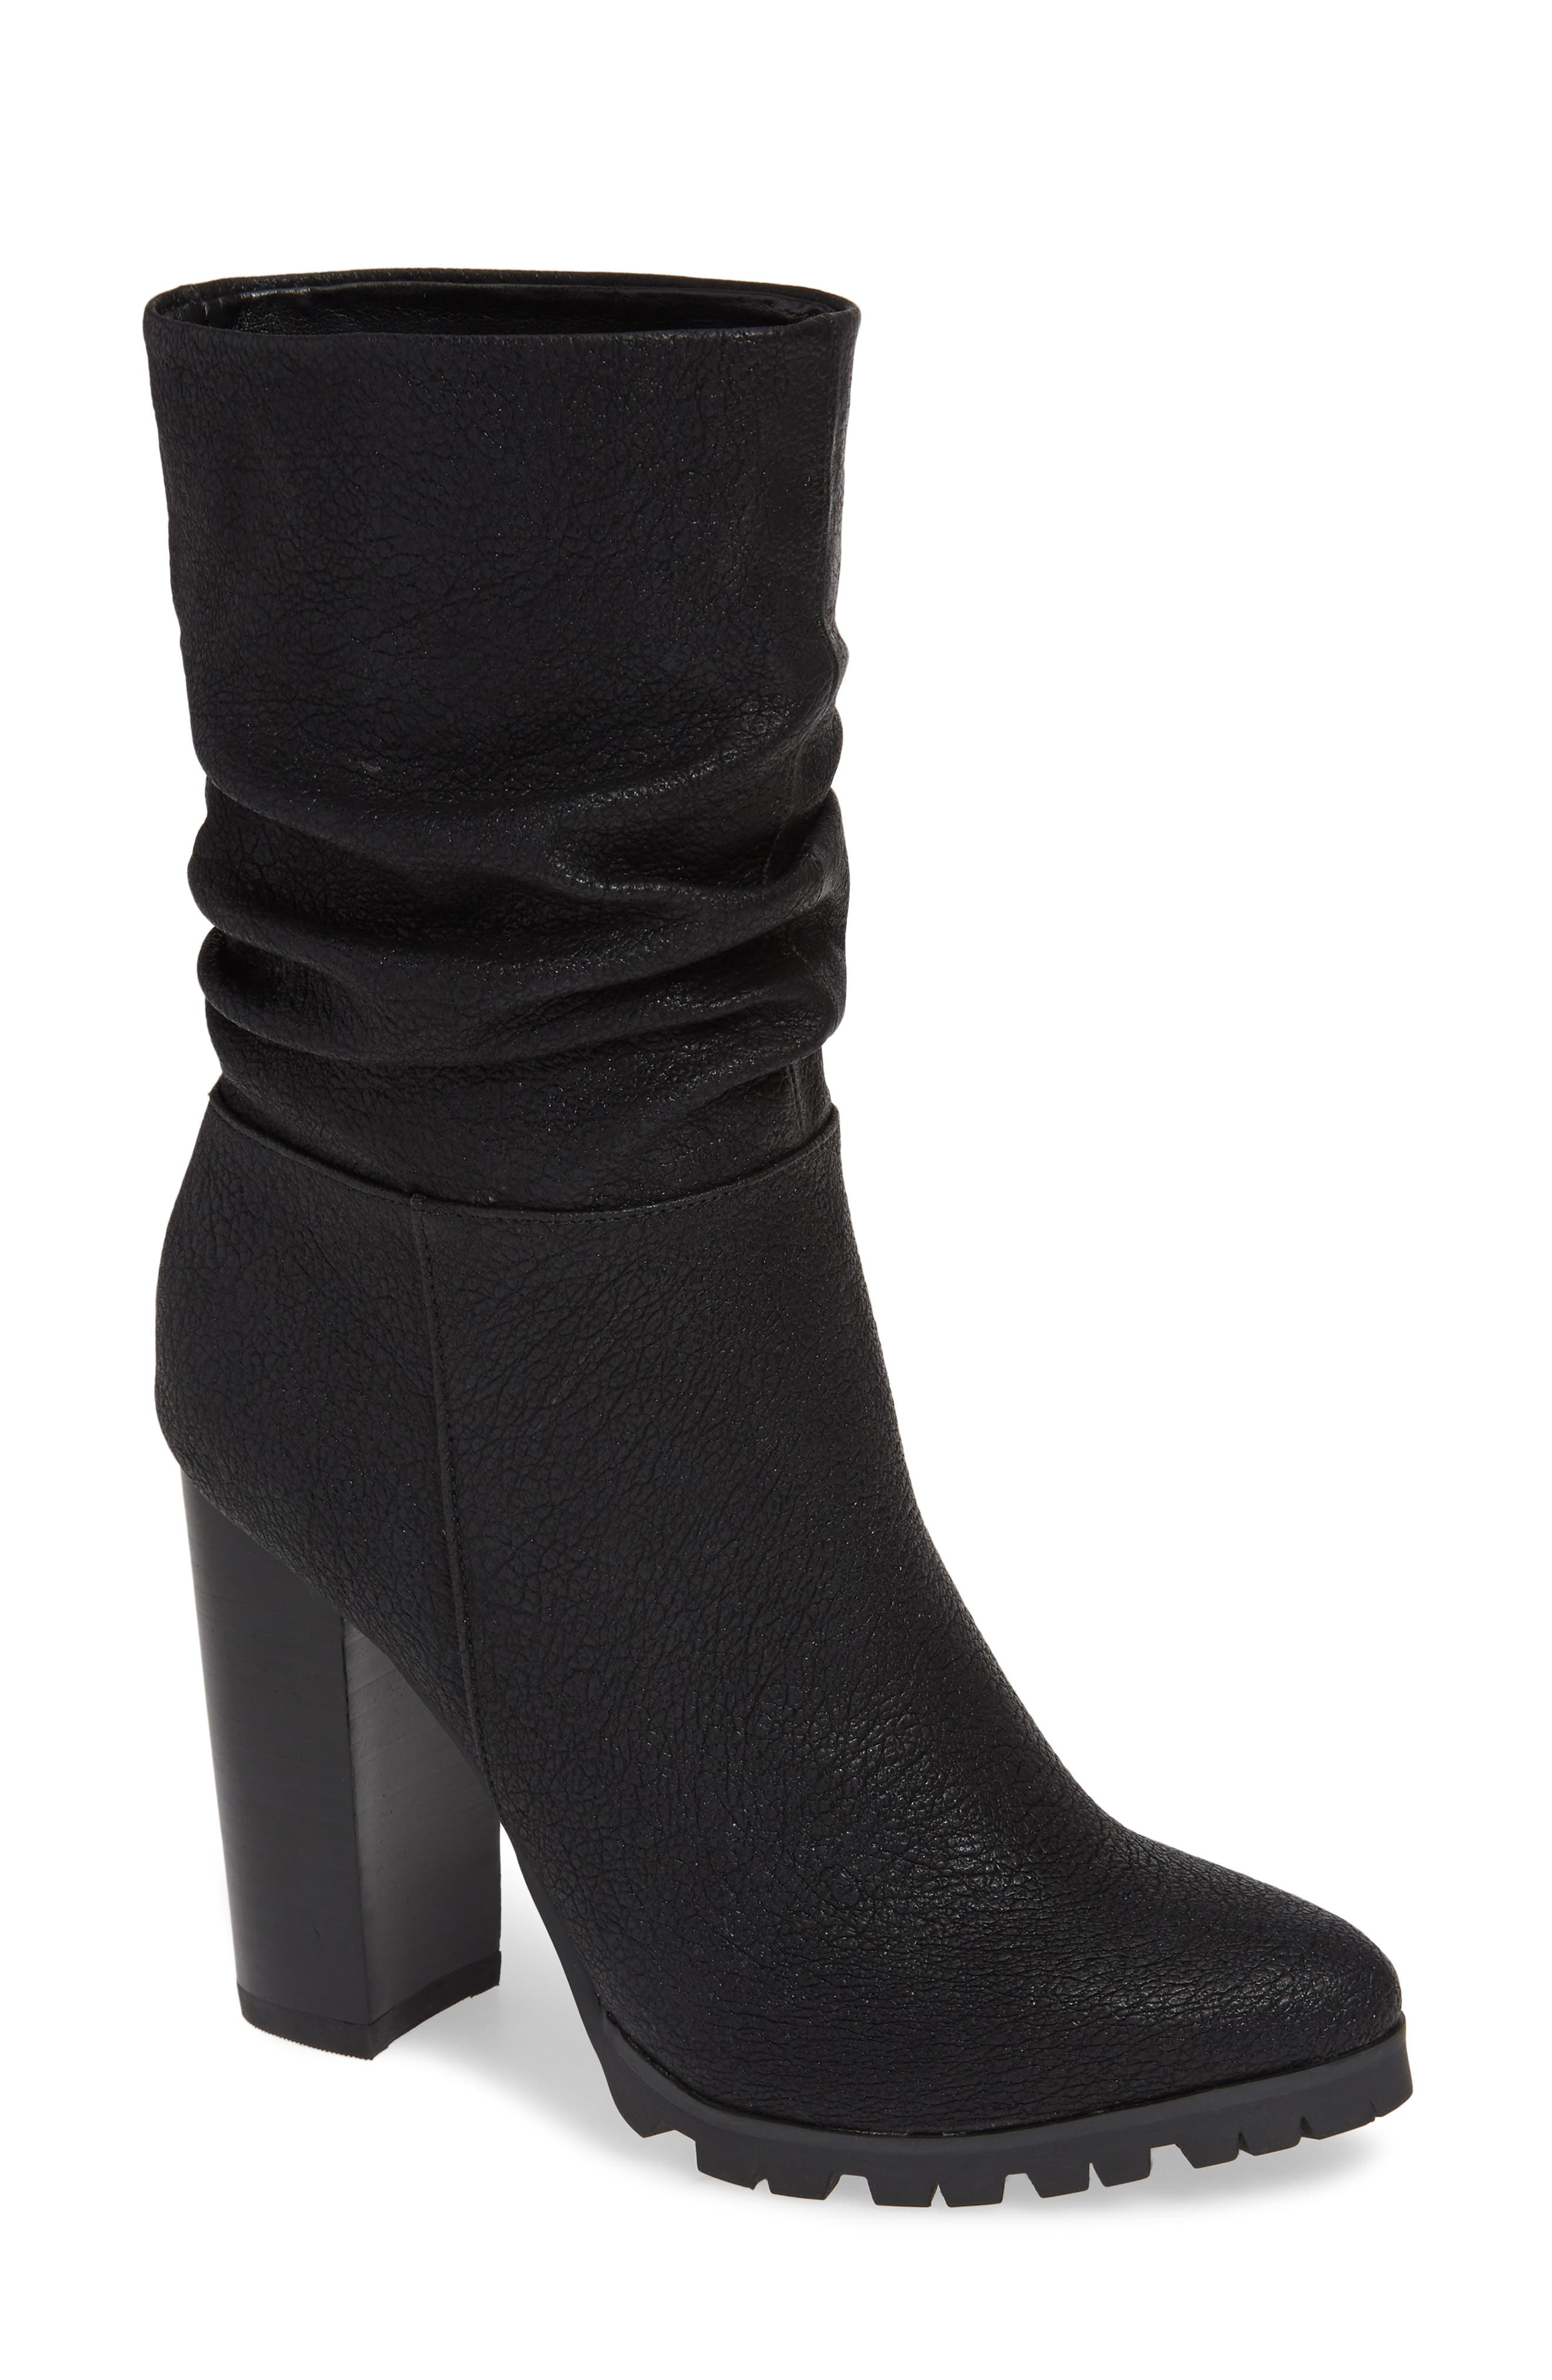 Katy Perry Slouch Bootie, Black